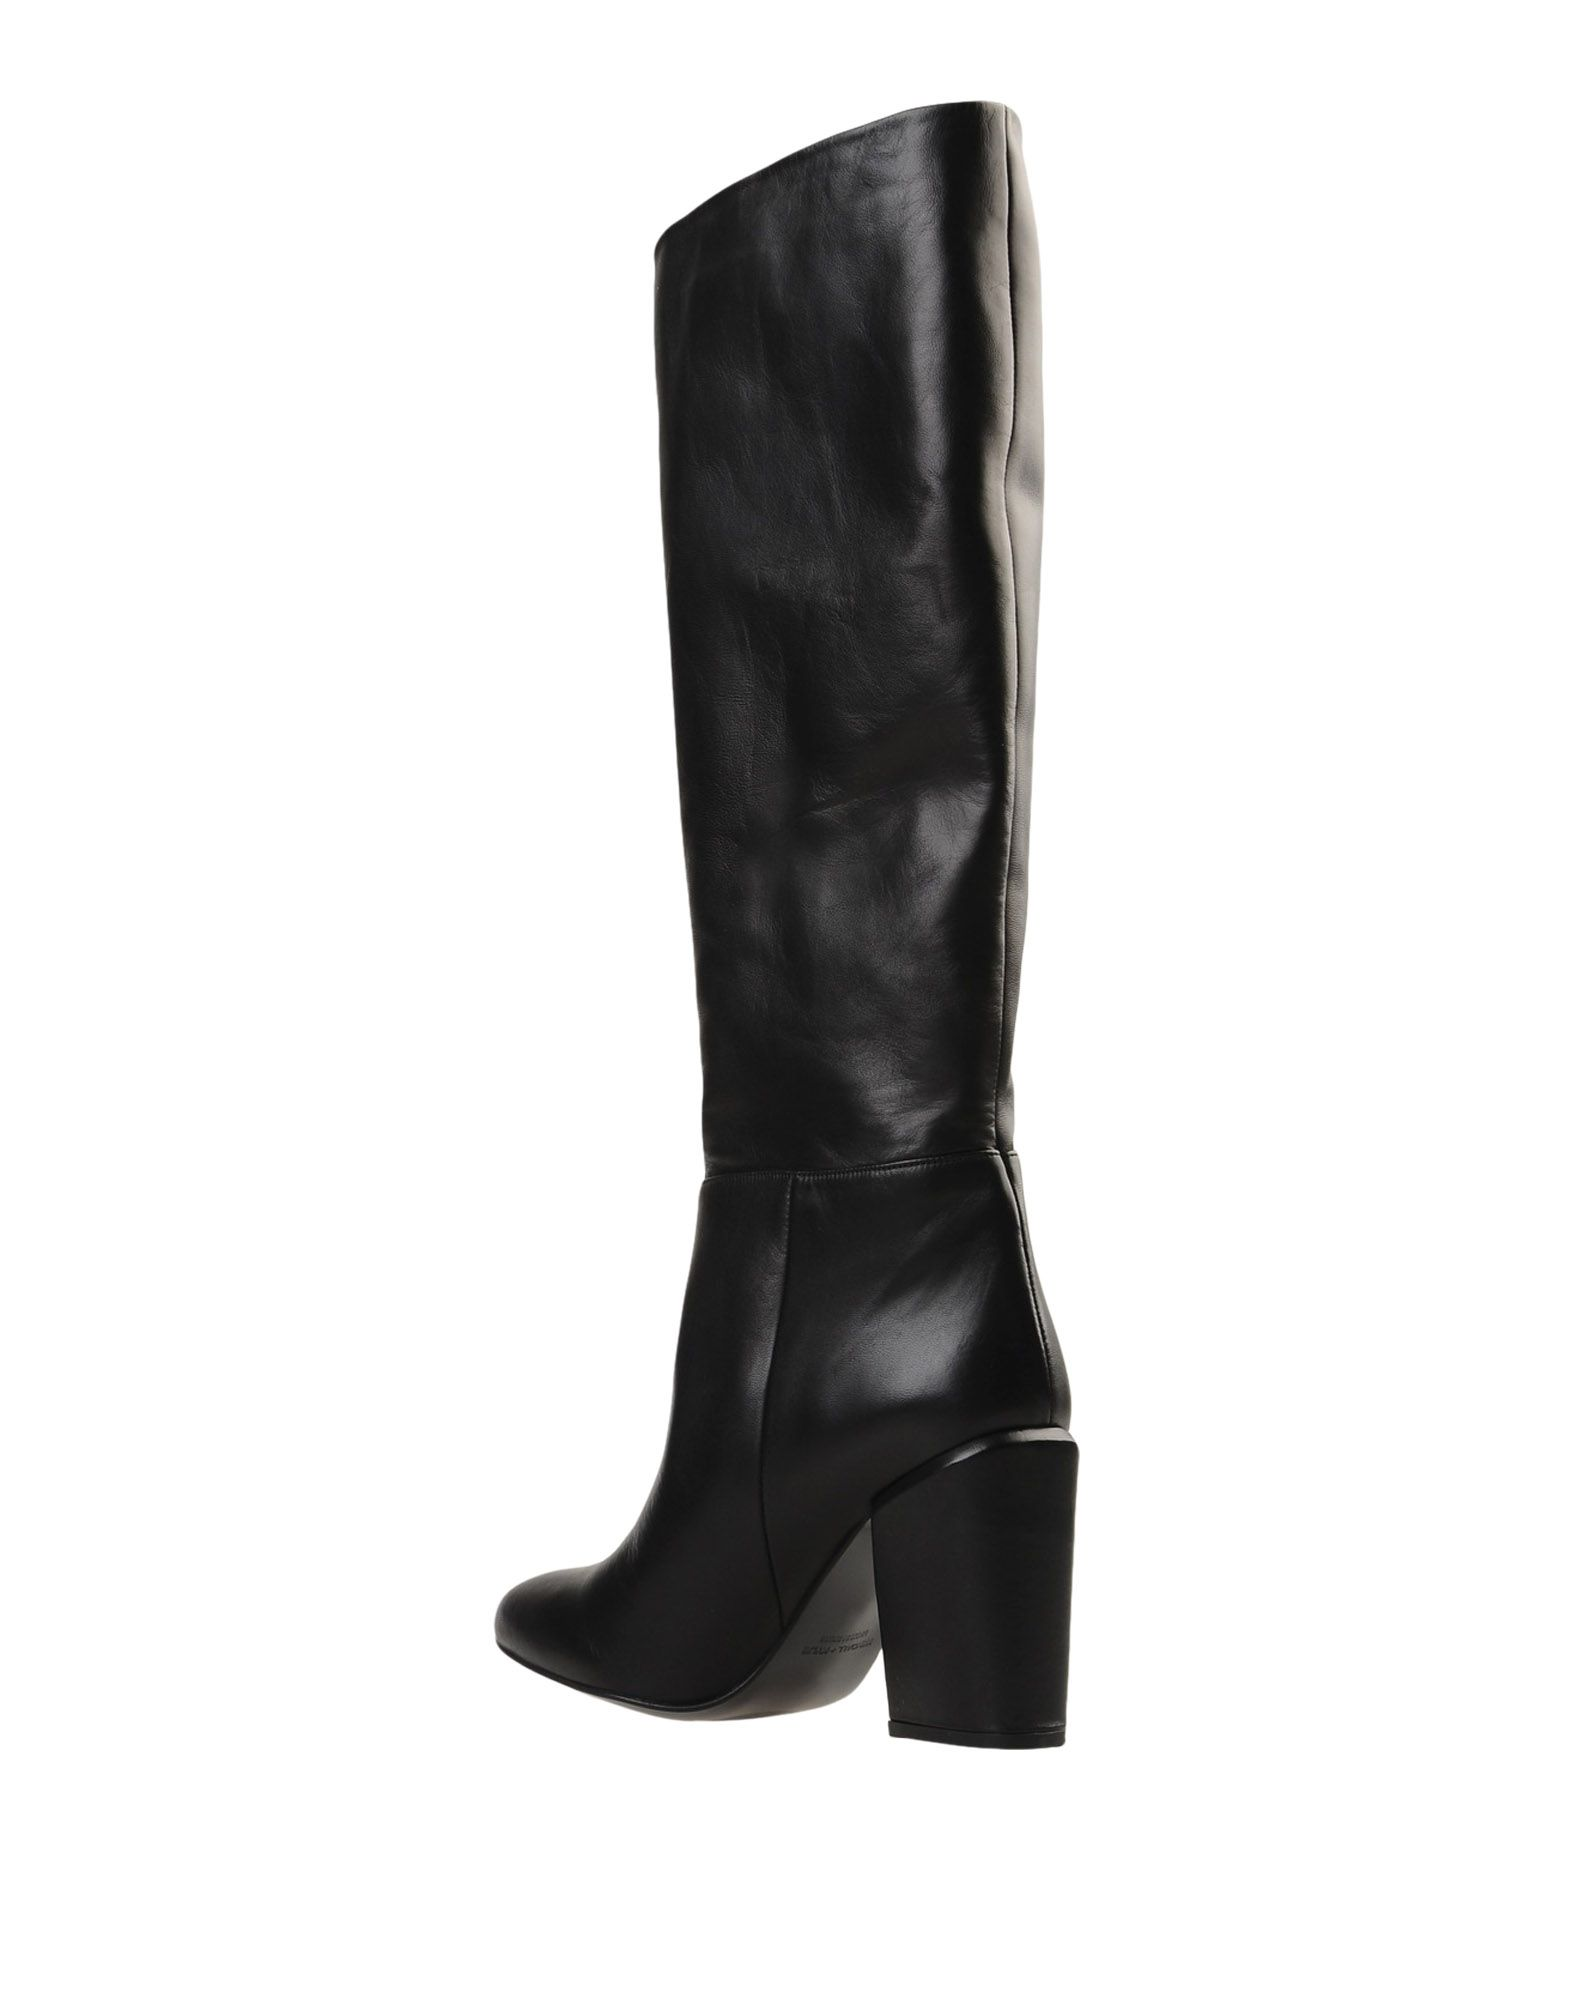 Kendall + Kylie Kylie Kylie Kknena - Boots - Women Kendall + Kylie Boots online on  United Kingdom - 11572059CS f8a7bb